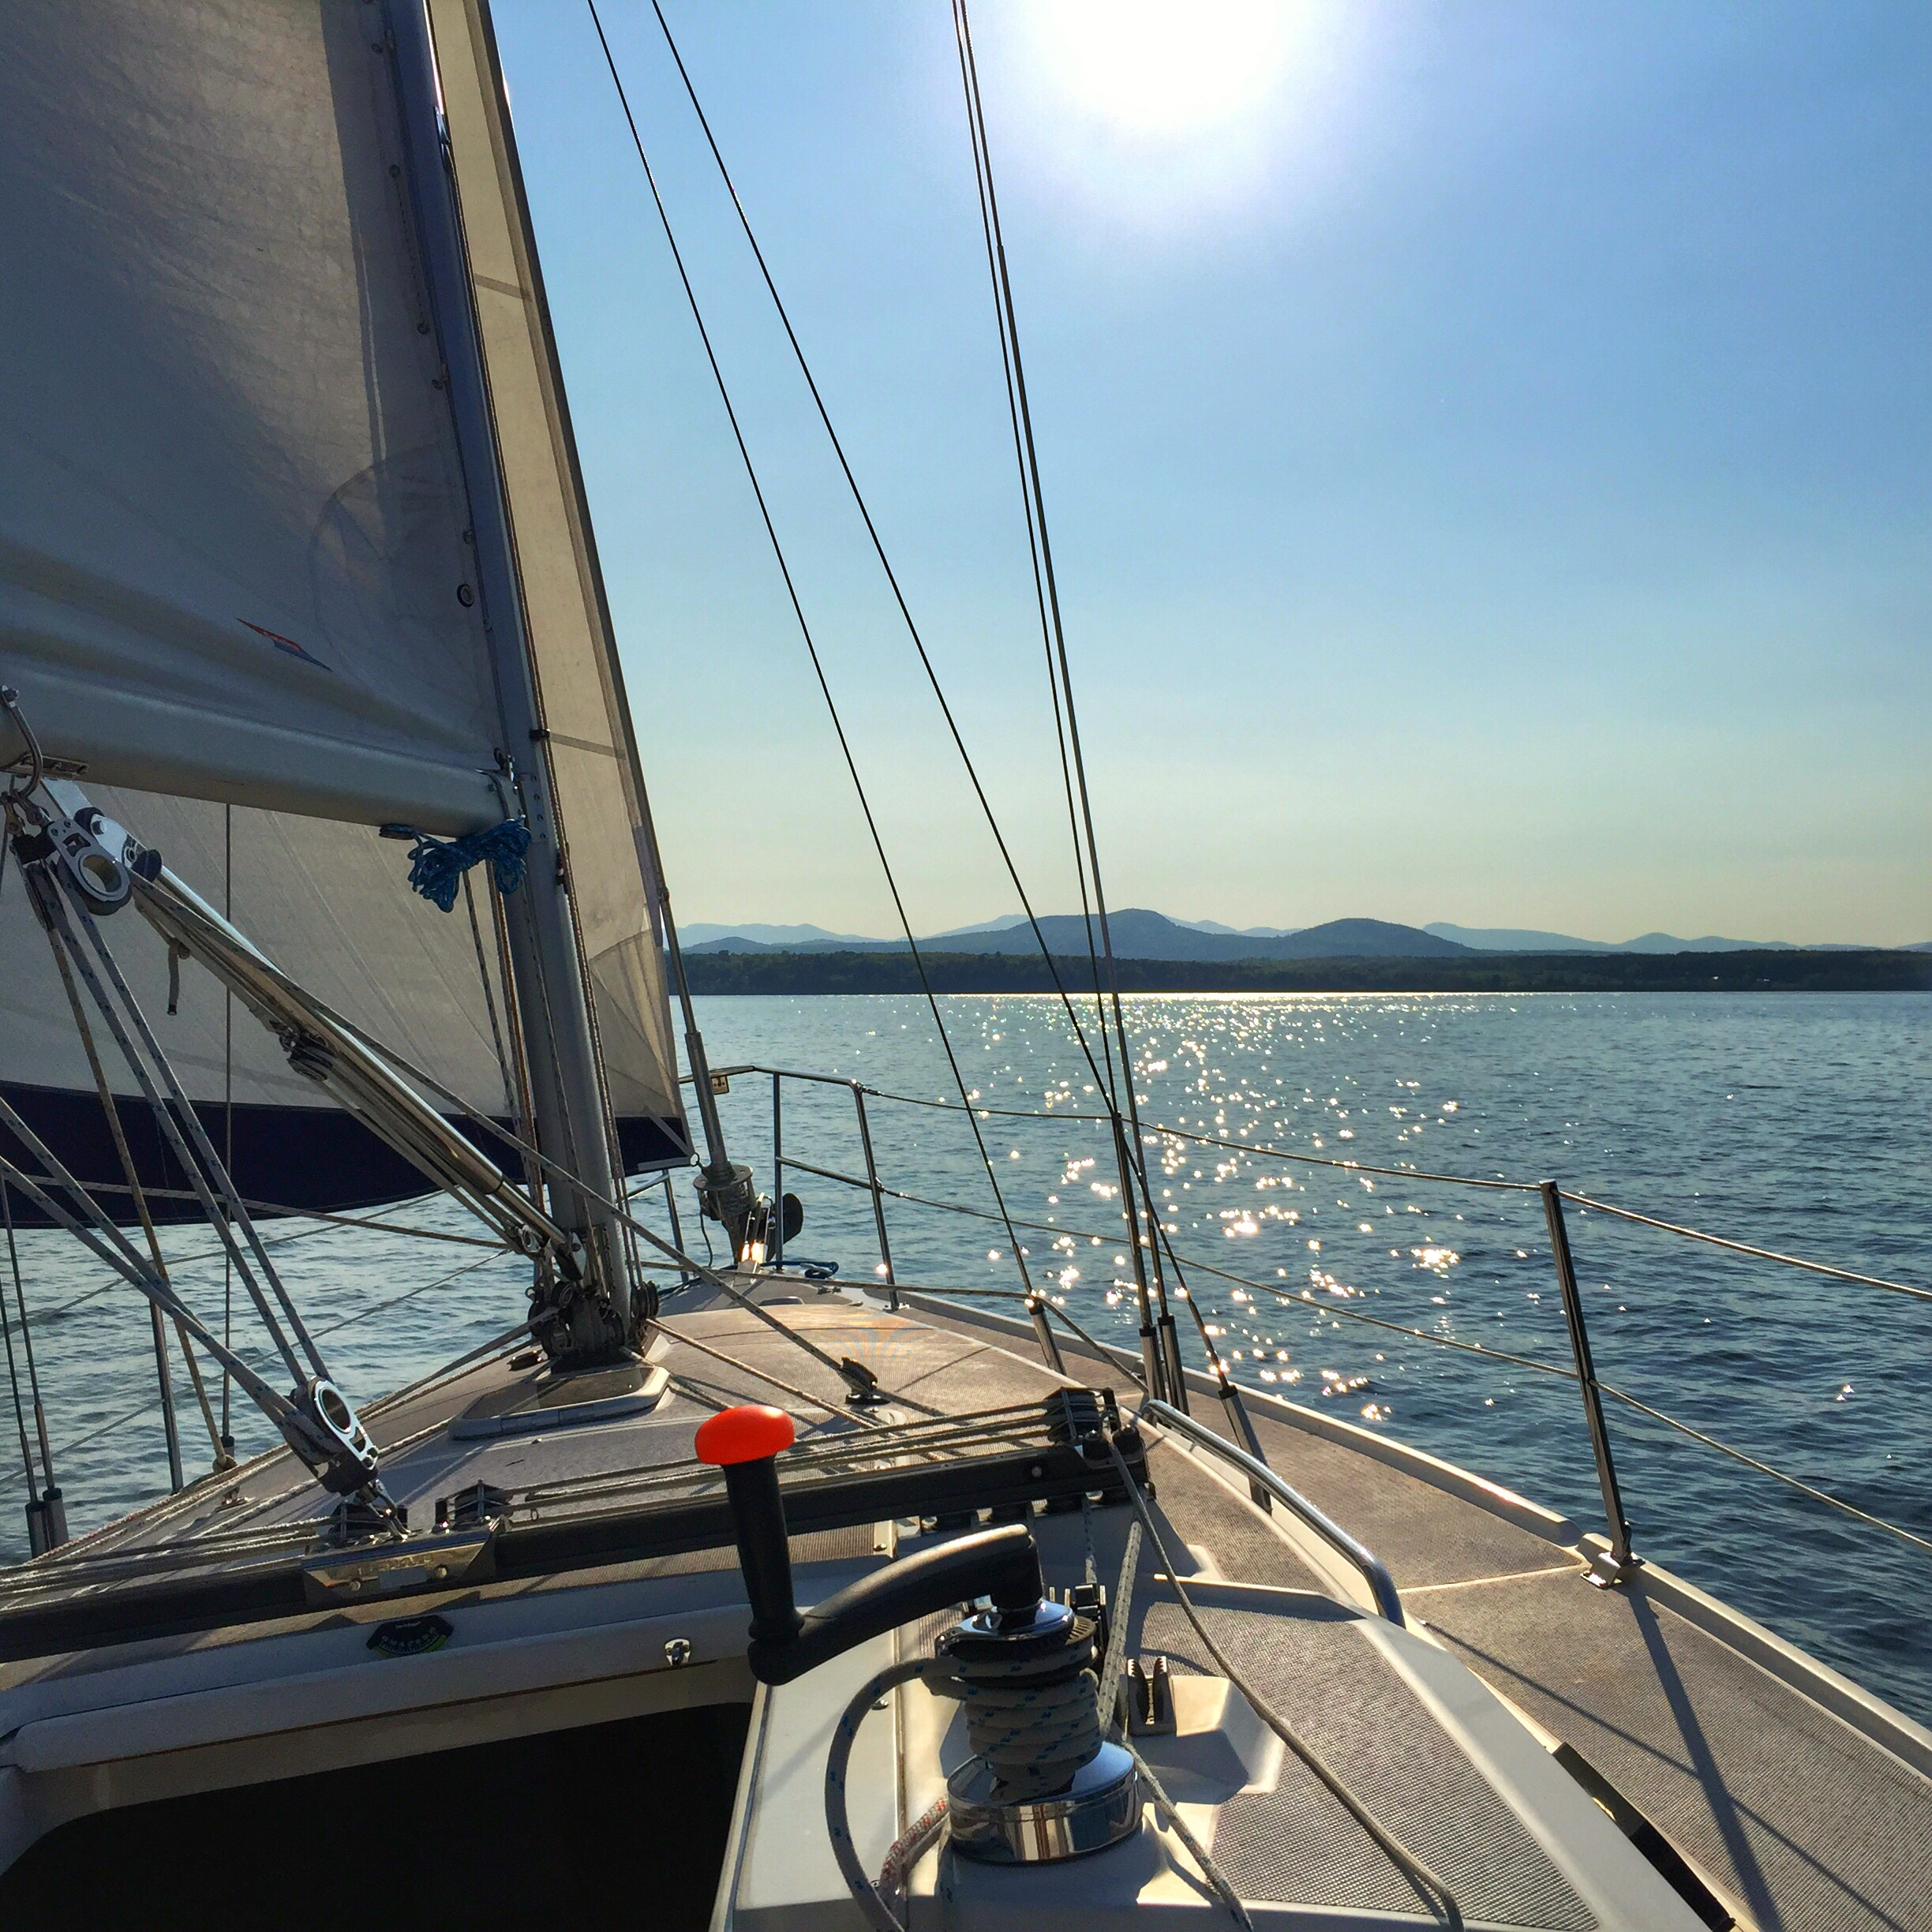 Happy hour sail aboard Errant on May 23, 2016